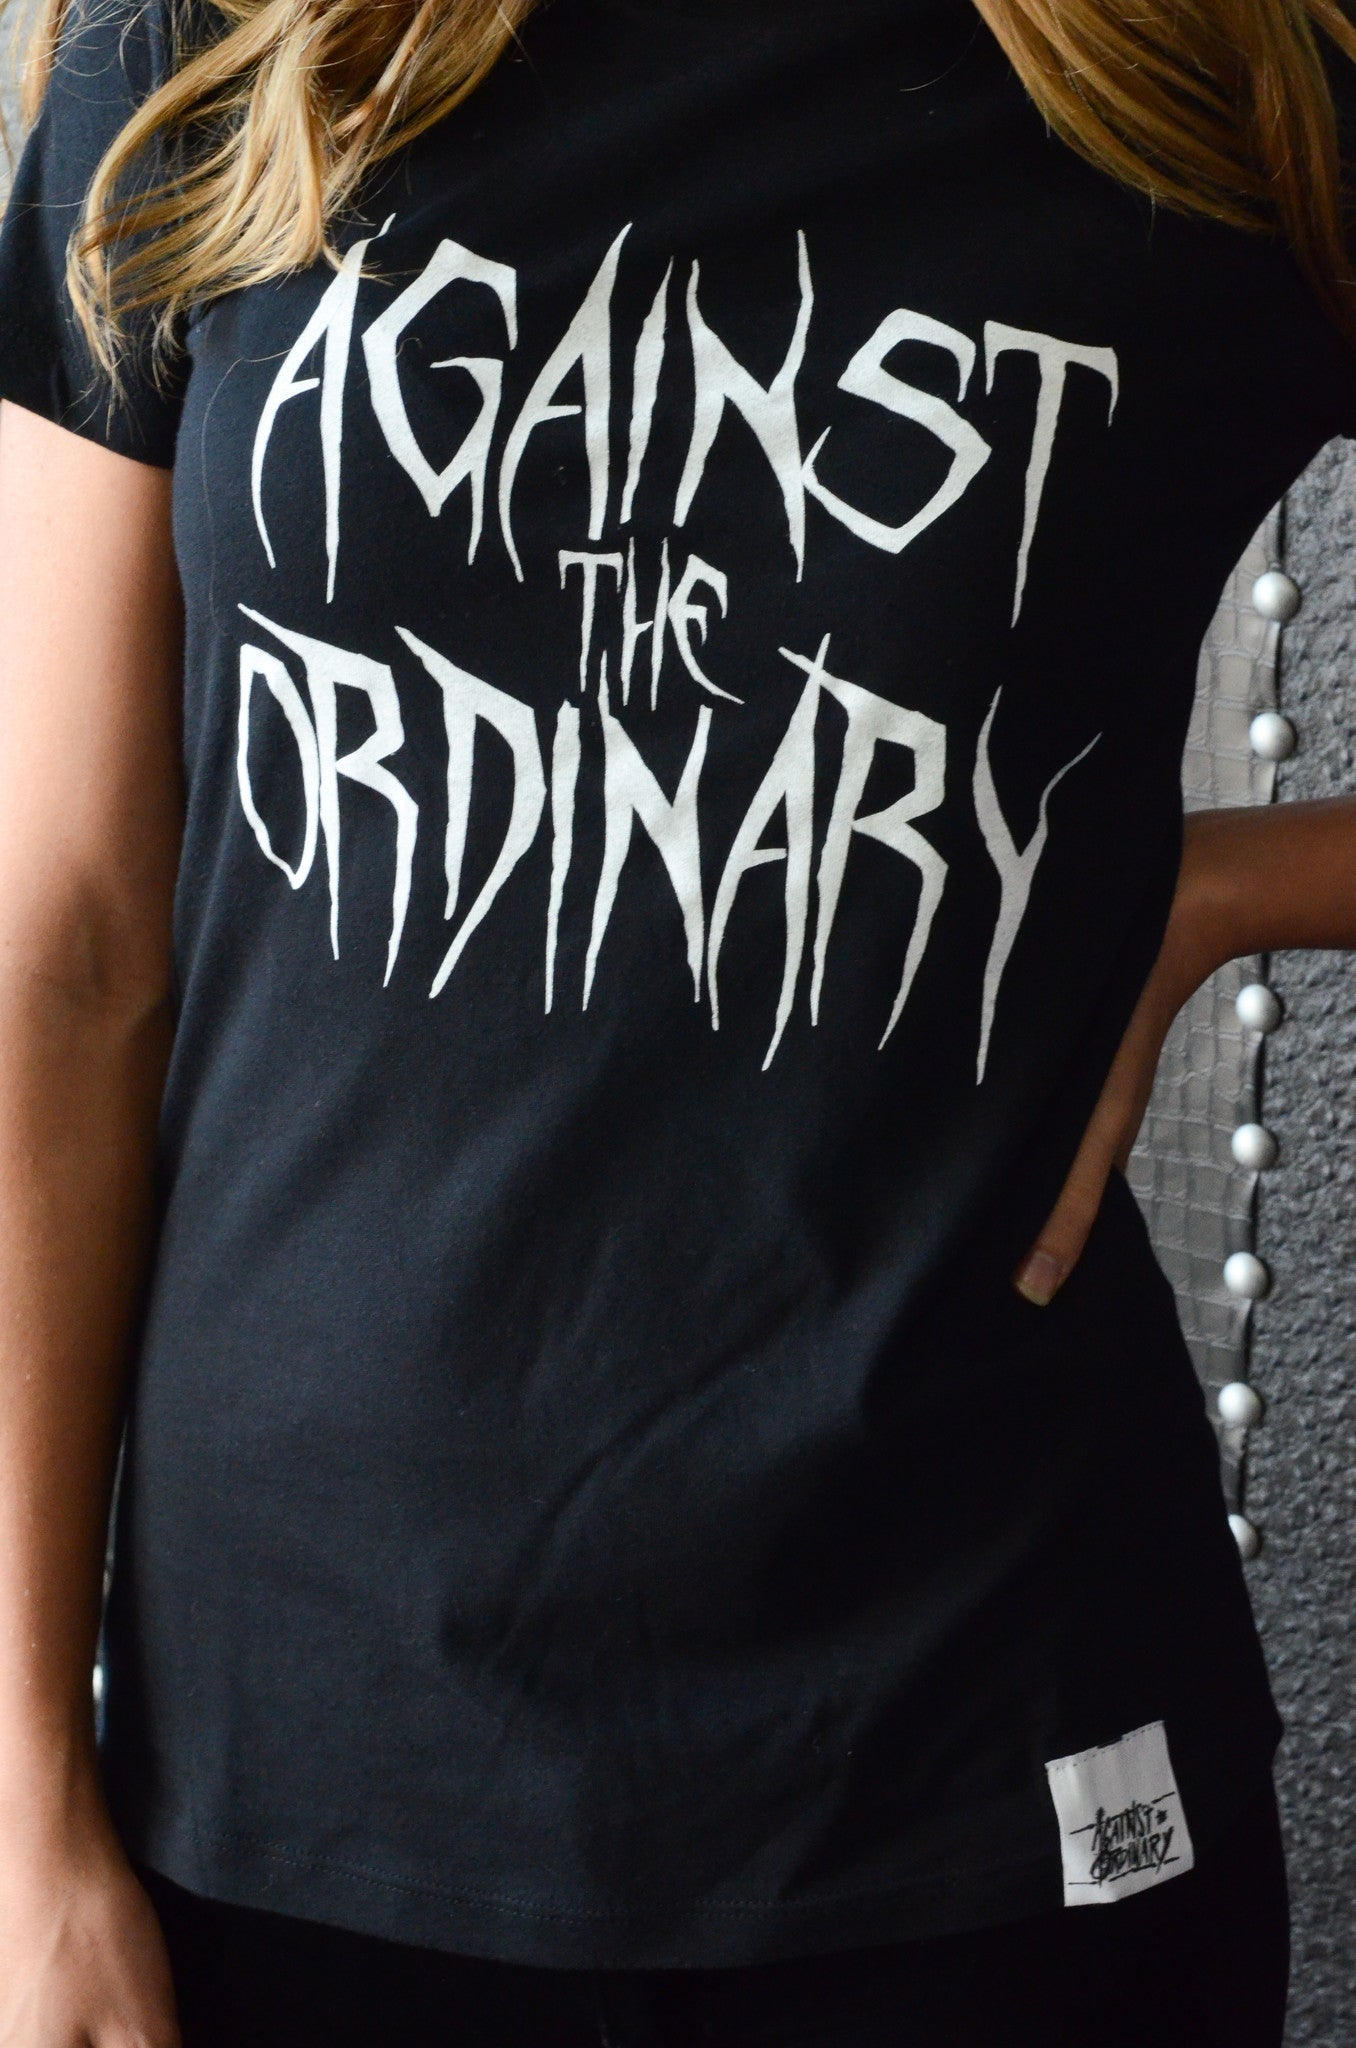 Against the Ordinary Print Short Sleeve Women's Tee with METAL Design